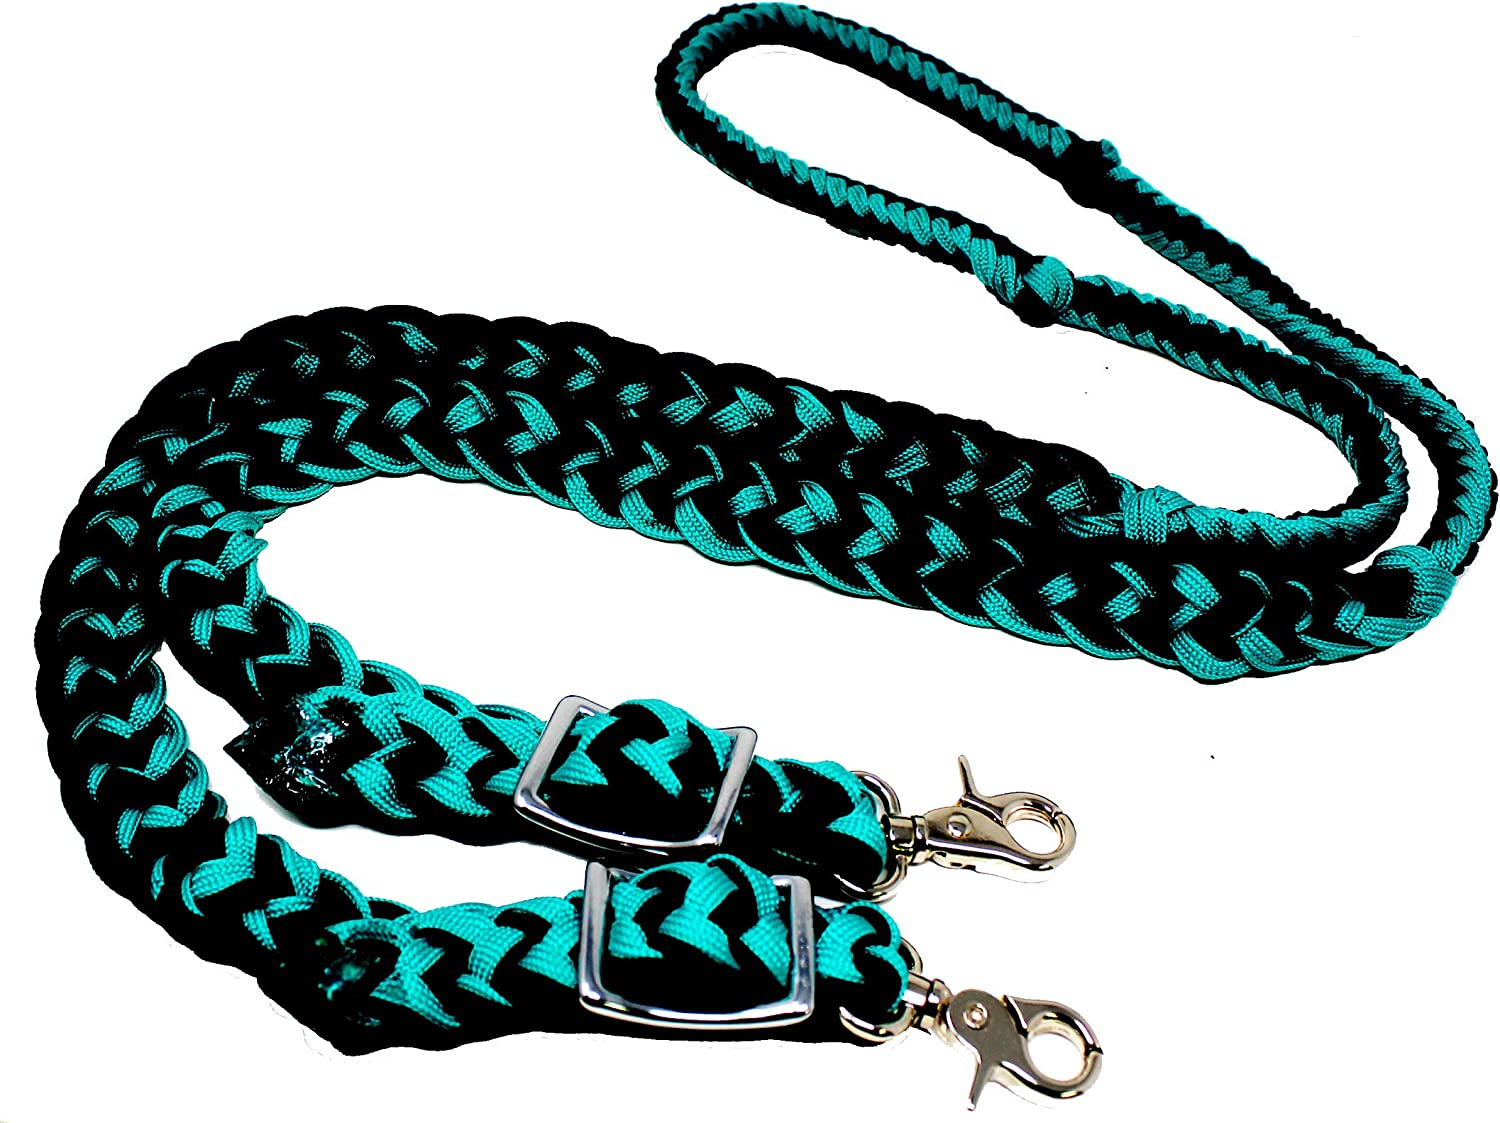 unisex CHALLENGER Roping Knotted Horse Max 45% OFF Tack Western Barrel Reins Nylon